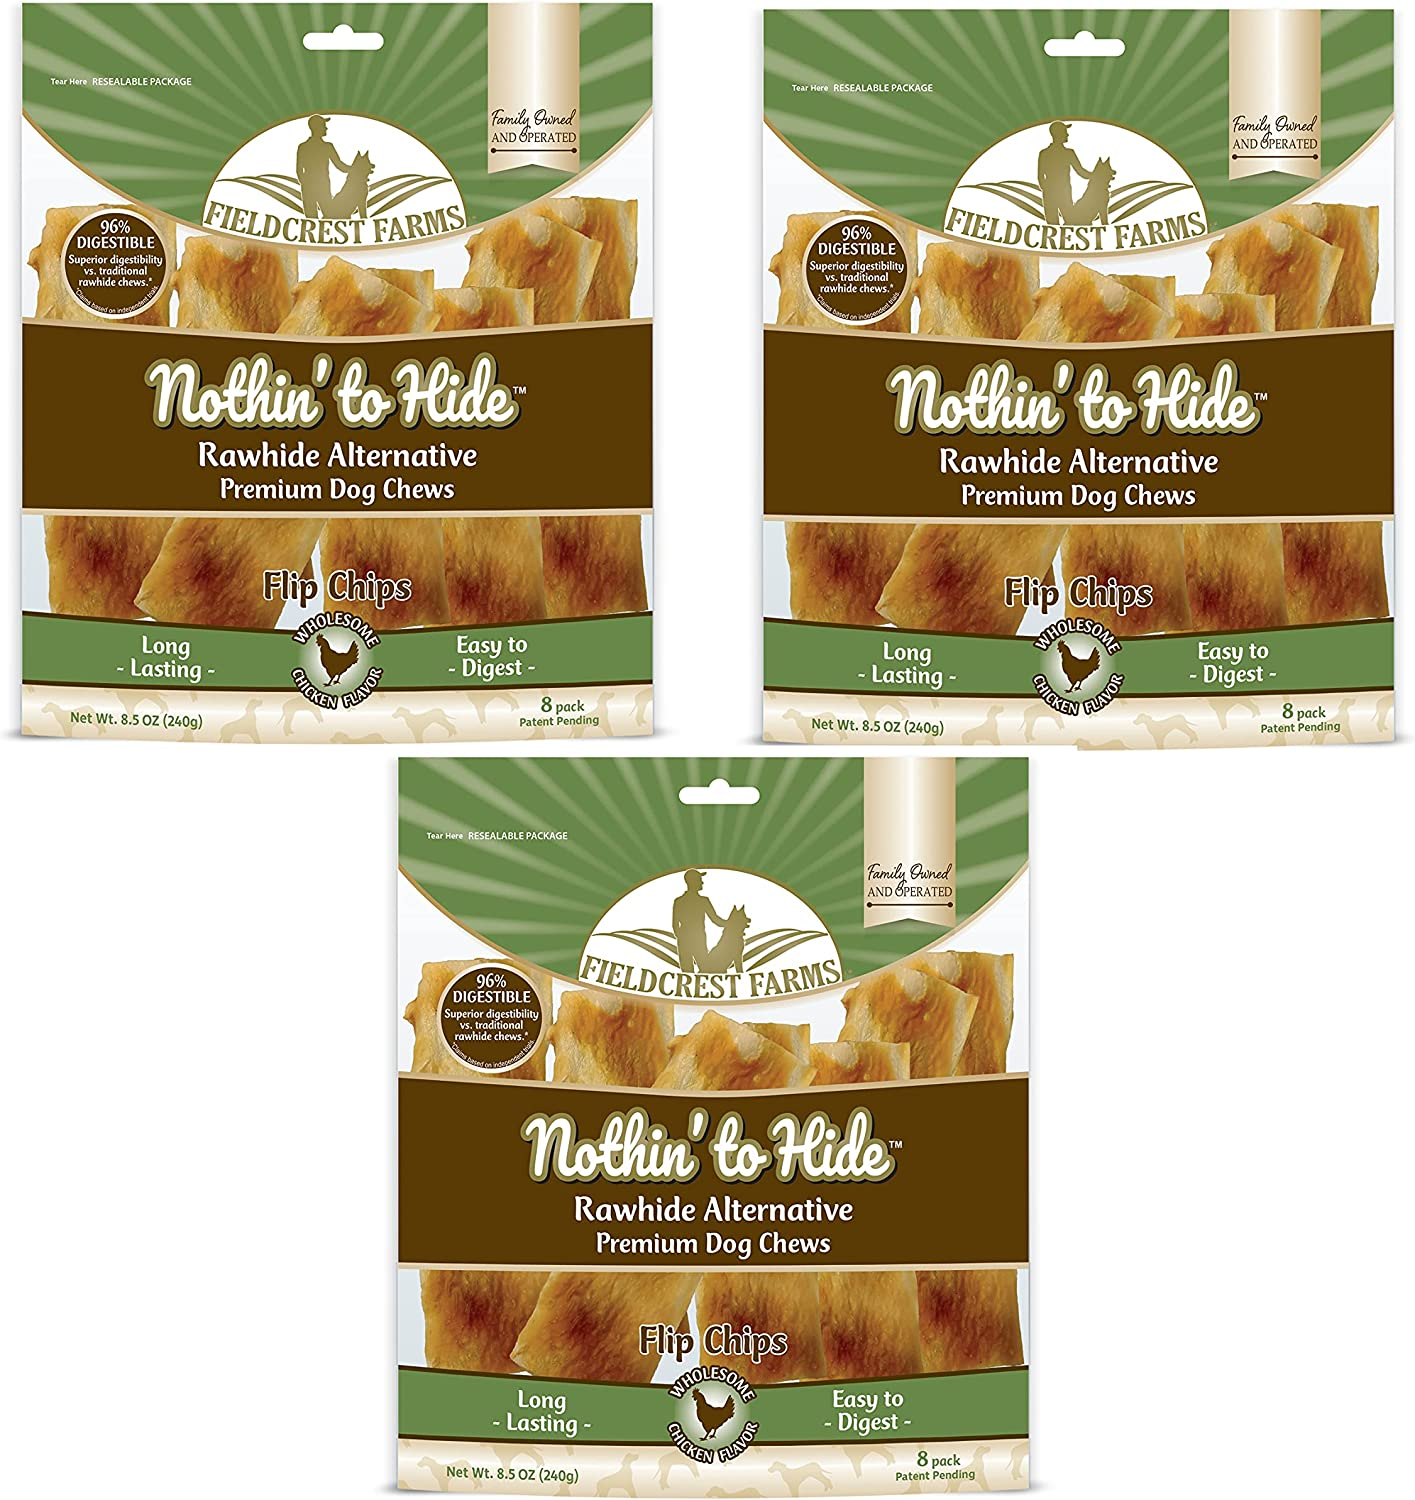 Nothin to Hide Flip Chips Dog Chews - All Natural Rawhide Alternative Treats for Dogs, Chicken, Beef or Peanut Butter Flavor Snack for All Breed Dogs - 3 Pack by Fieldcrest Farms (Chicken)